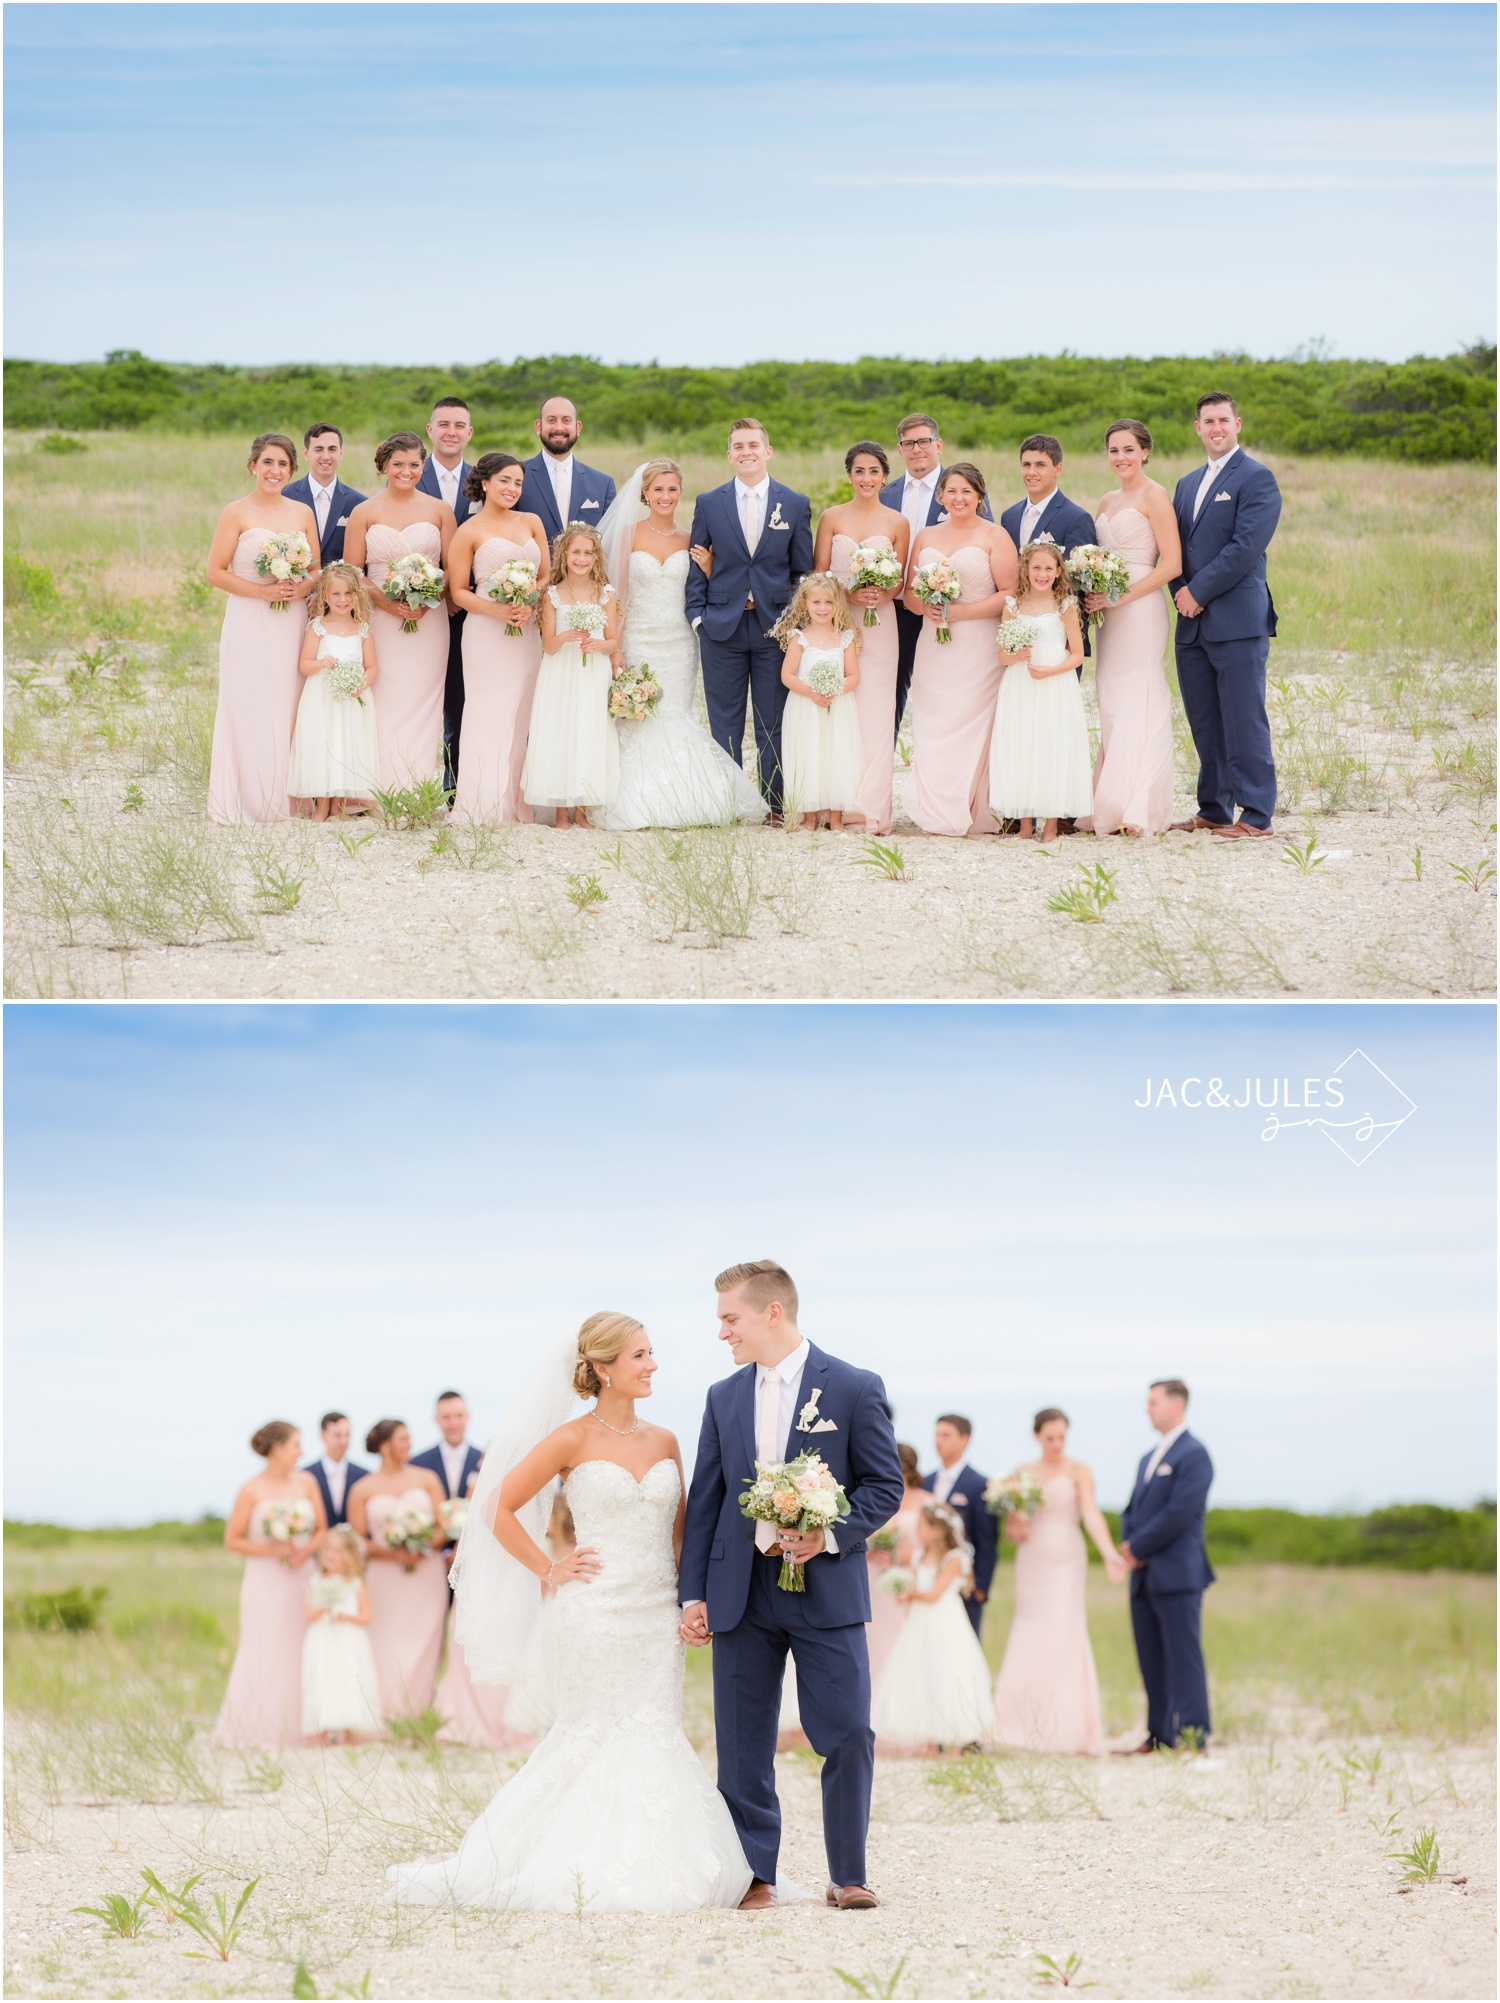 bridal party at Barnegat Lighthouse in LBI, NJ for wedding day photos on the beach.